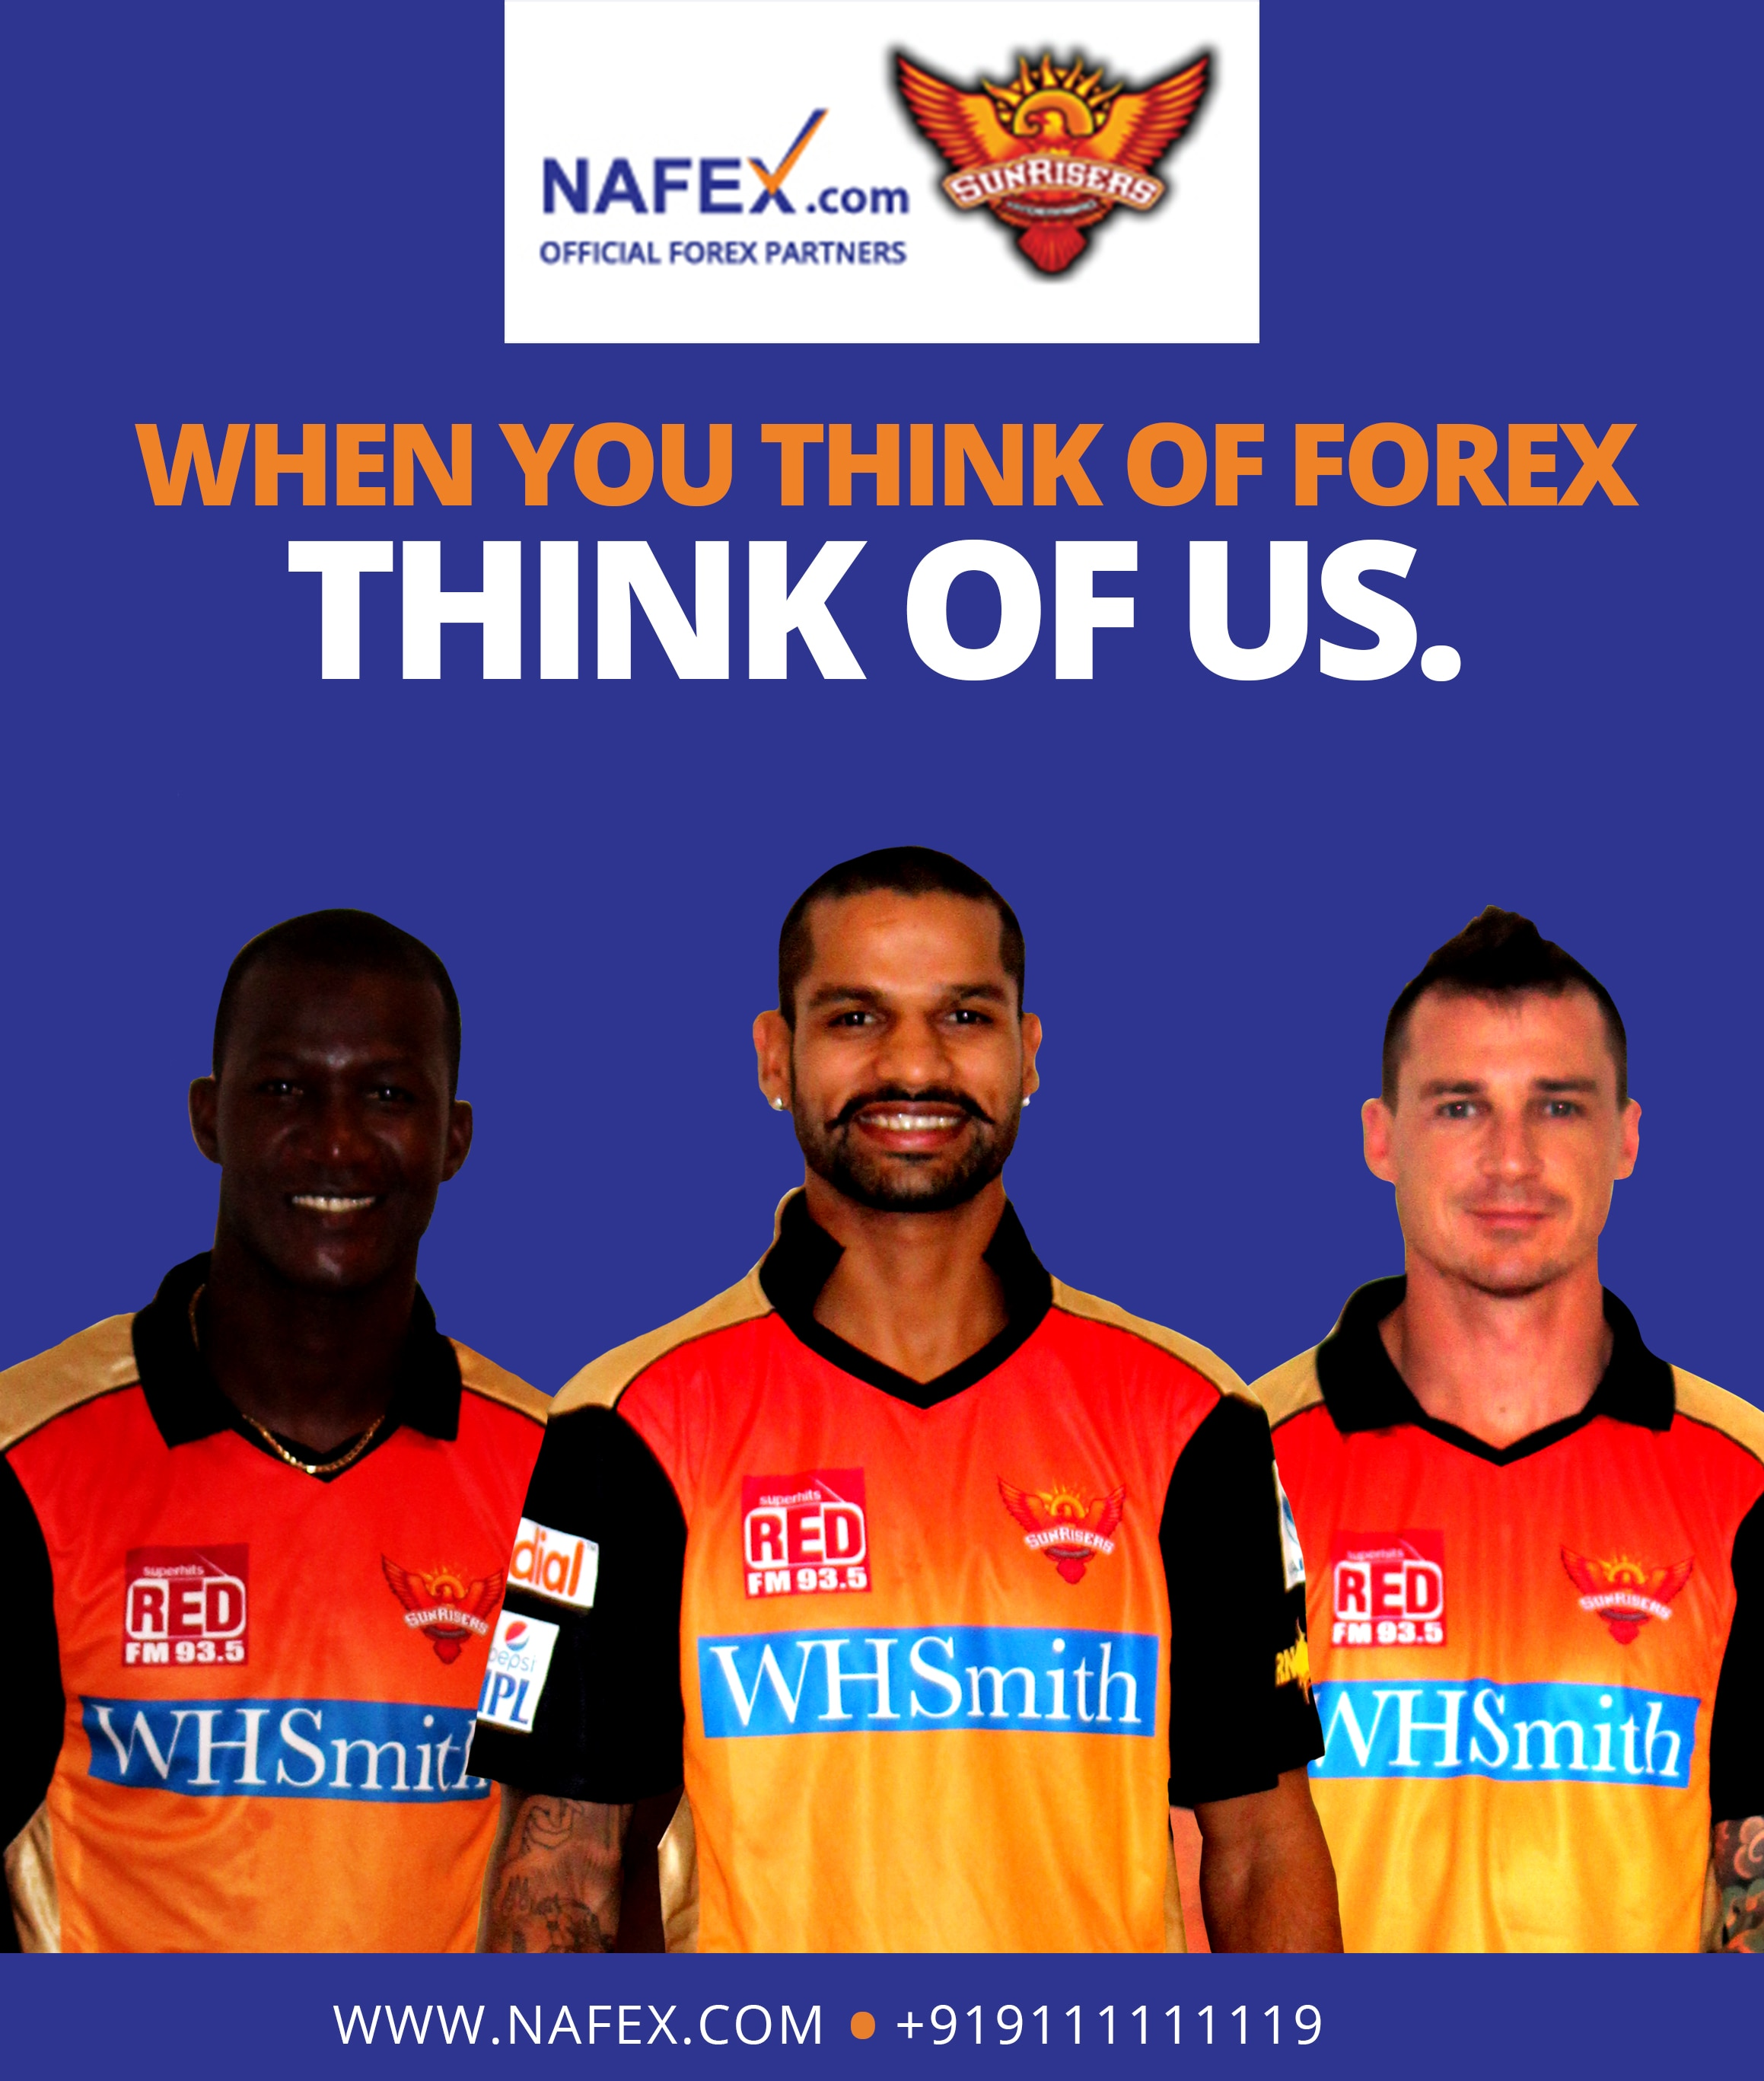 Nafex - Wadala East Foreign Currency Exchange Dealers Agents Wadala East, Online Travellers Cheque & Forex Prepaid Card